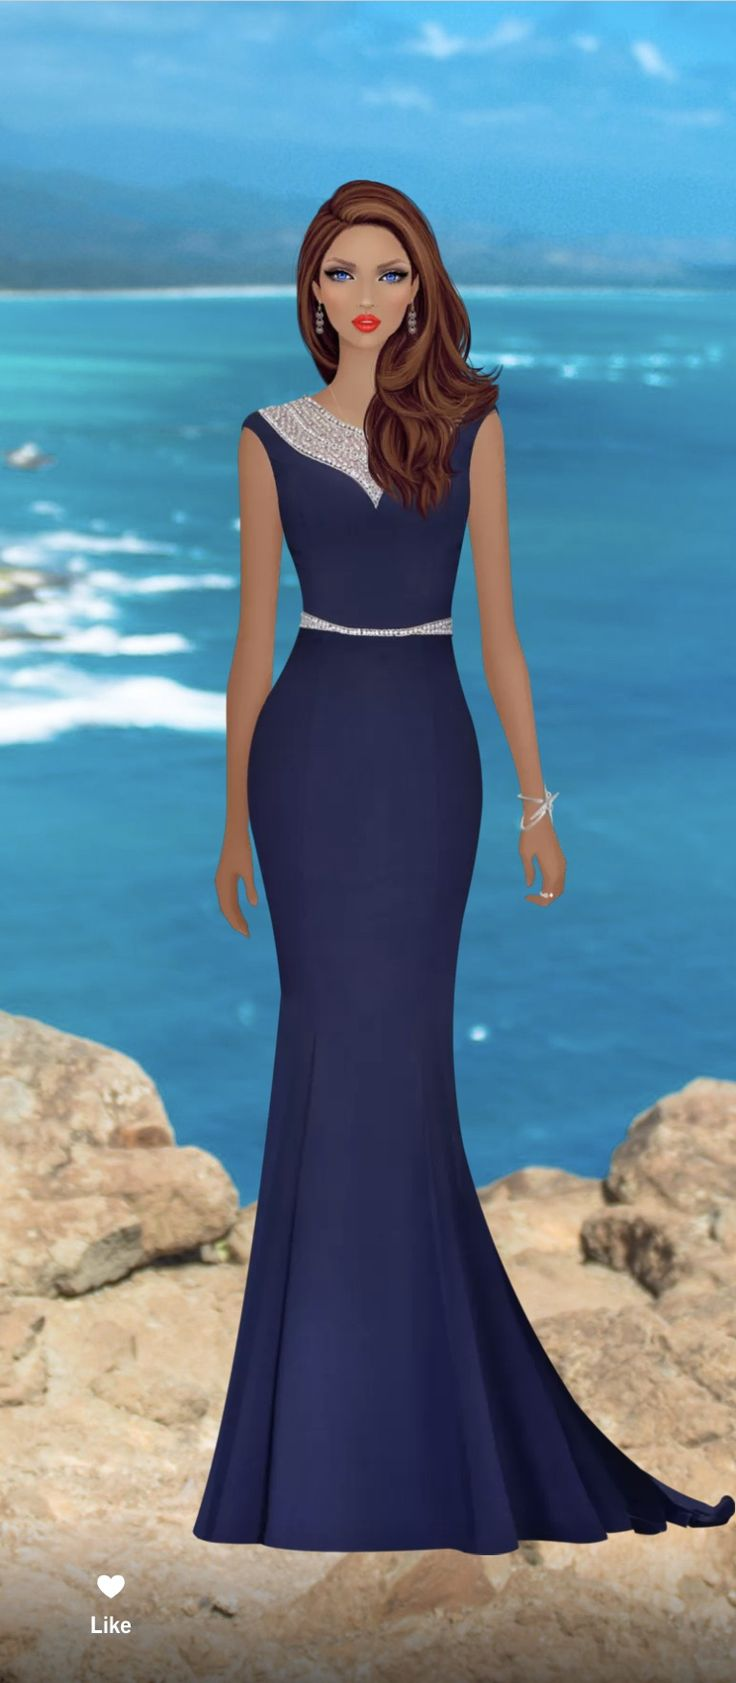 Pin by Brownsugars Sweets on Covet Fashion  Robe